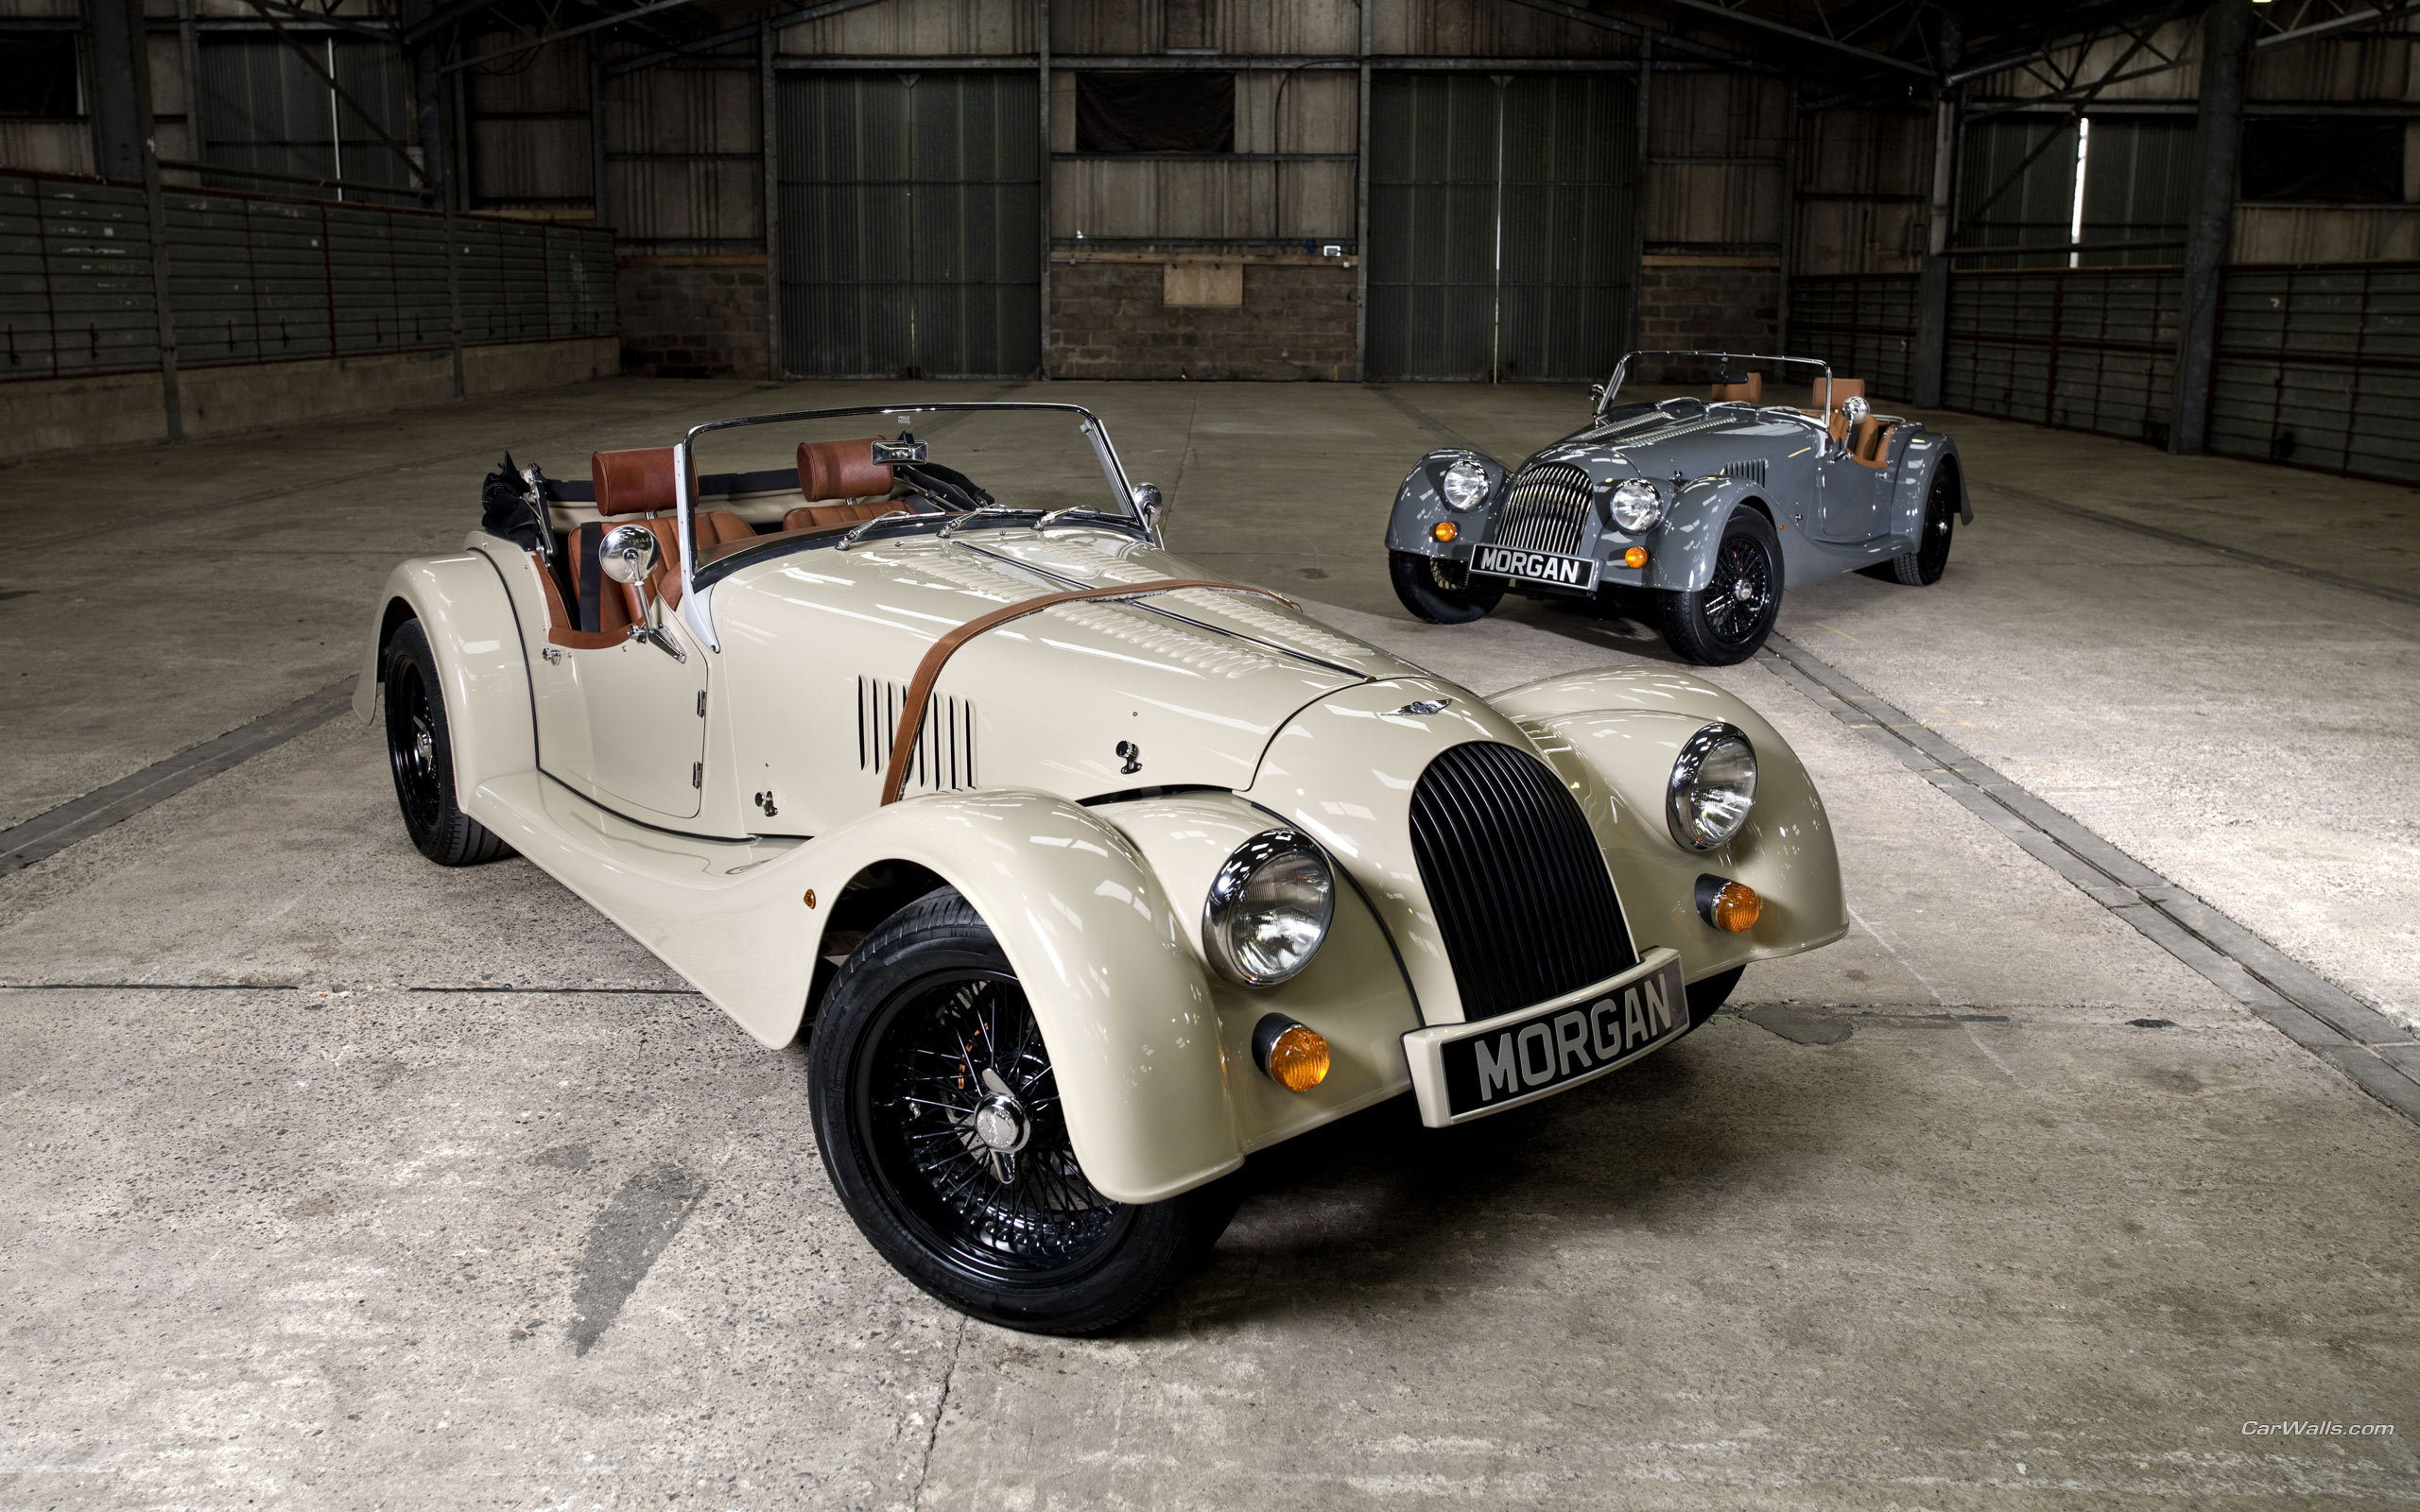 Morgan Plus 4 #20